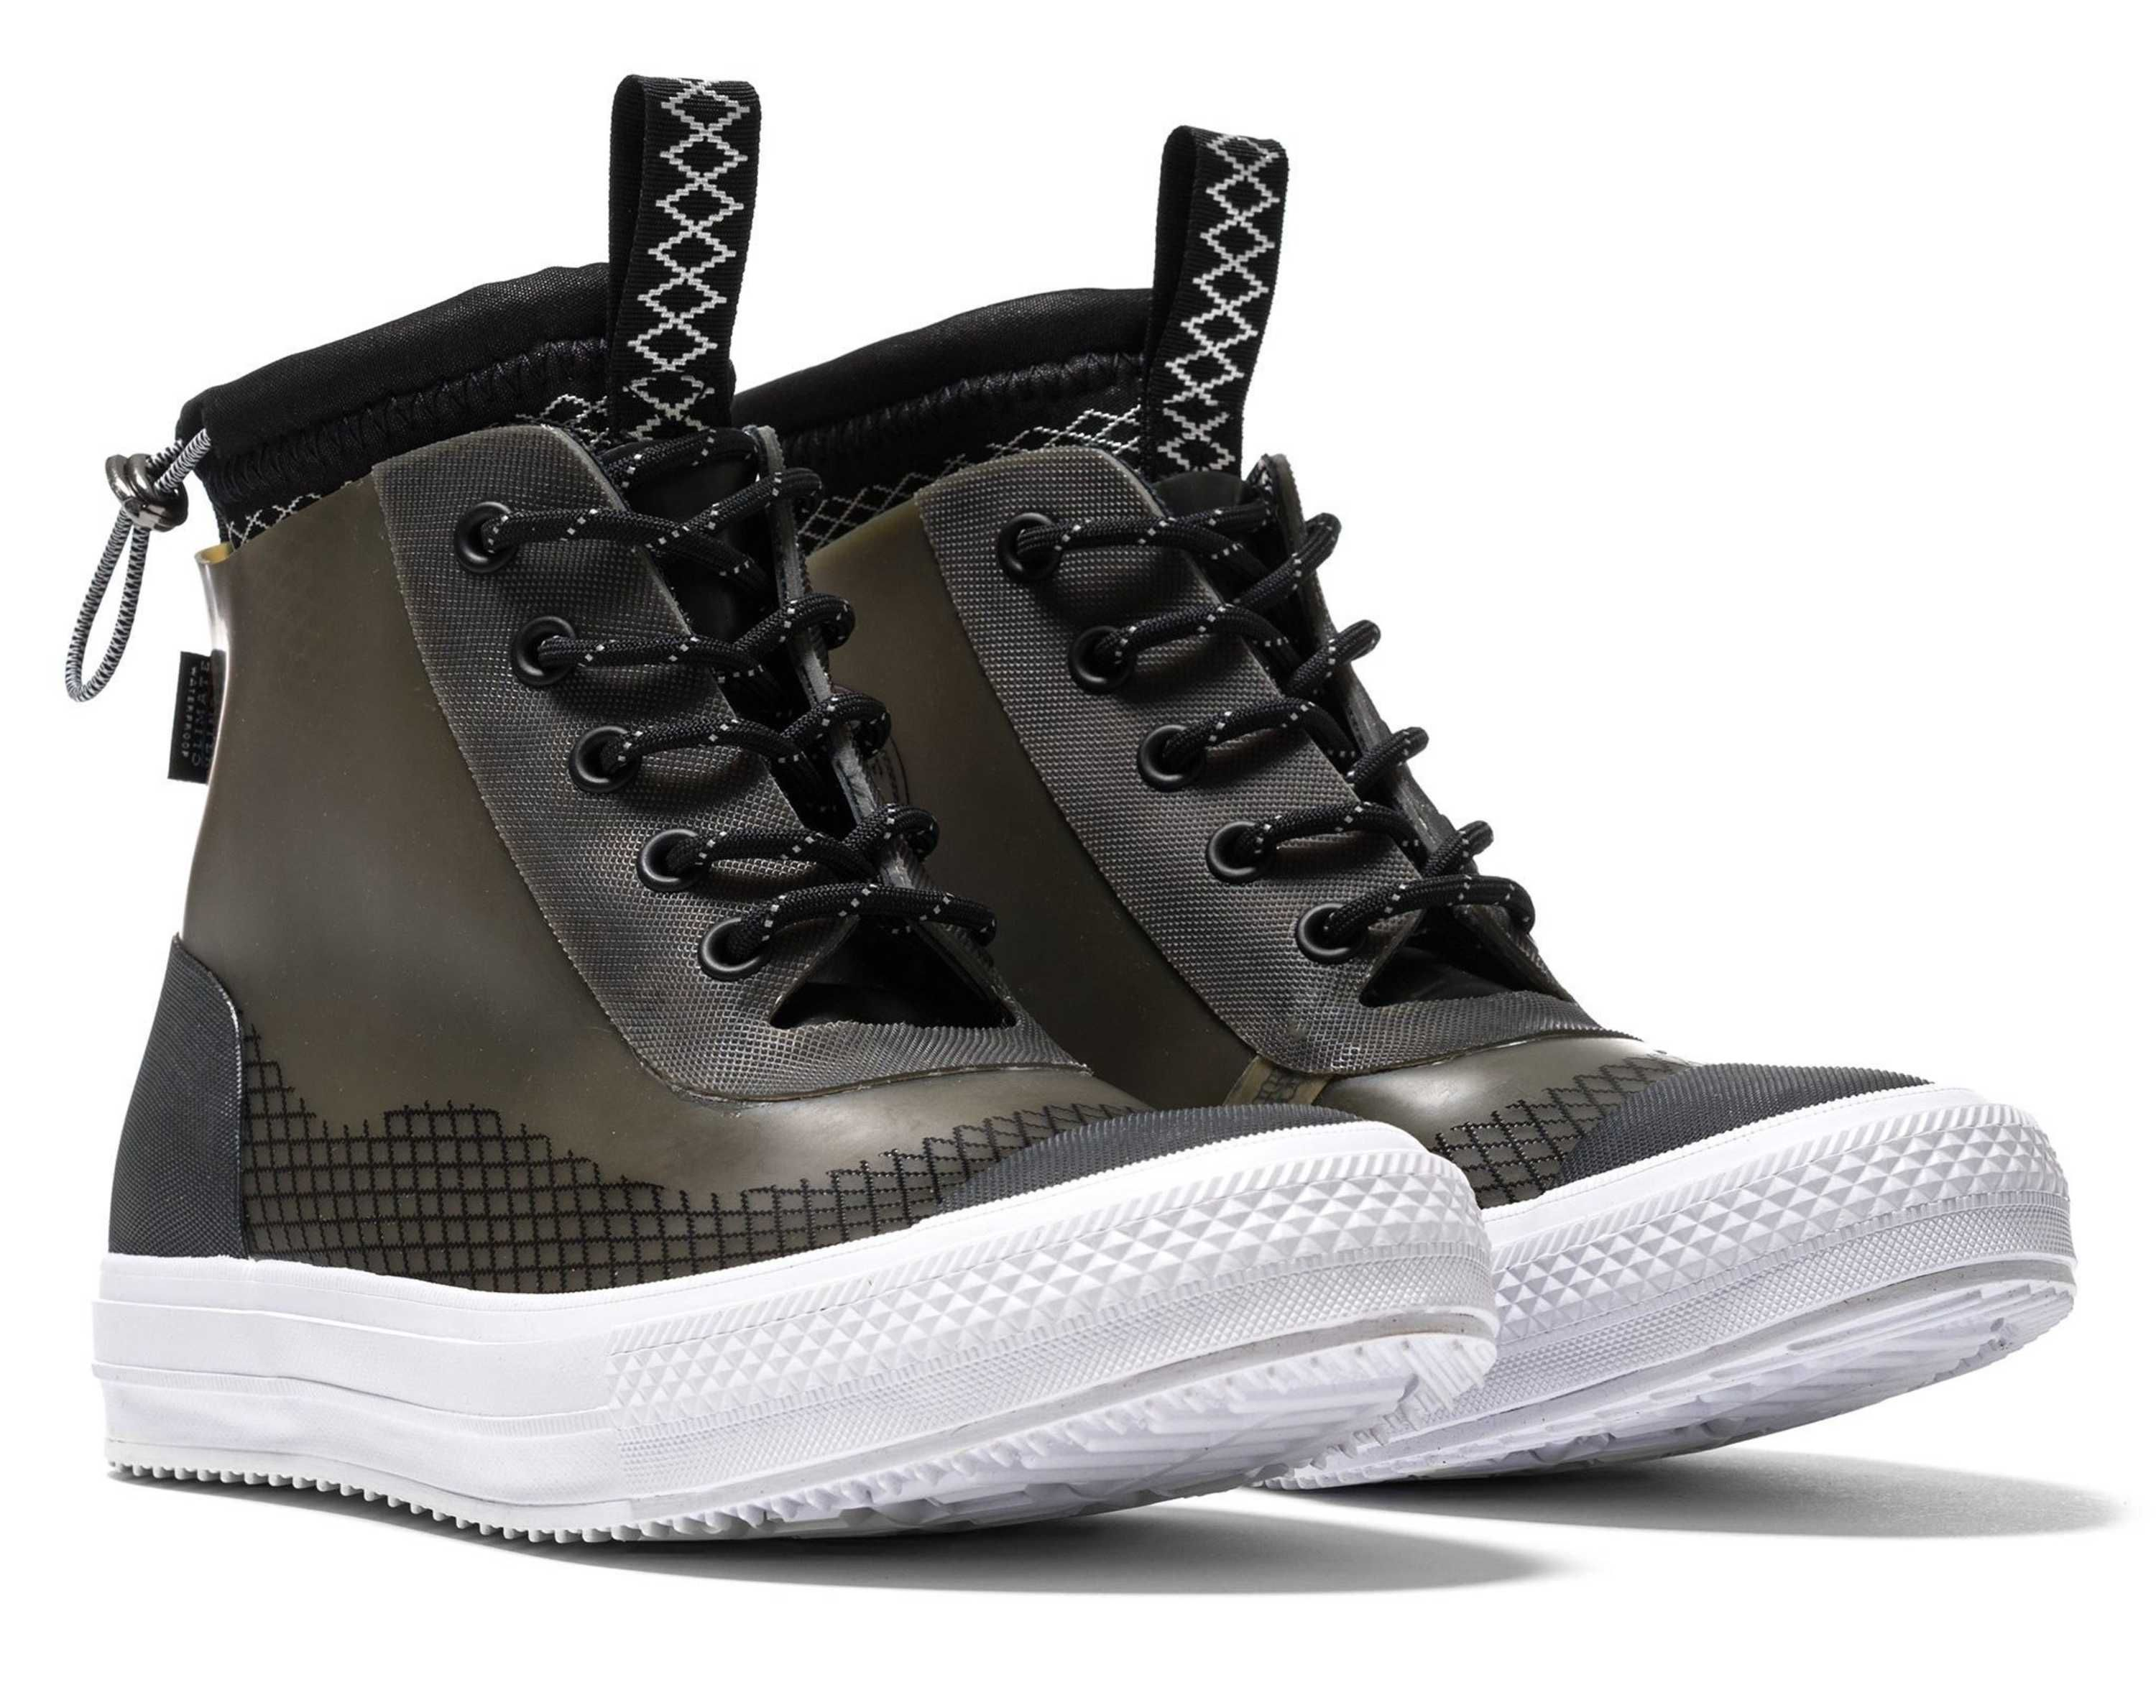 dfab31a947e3 Converse s newest Chuck Taylor is ready for a monsoon